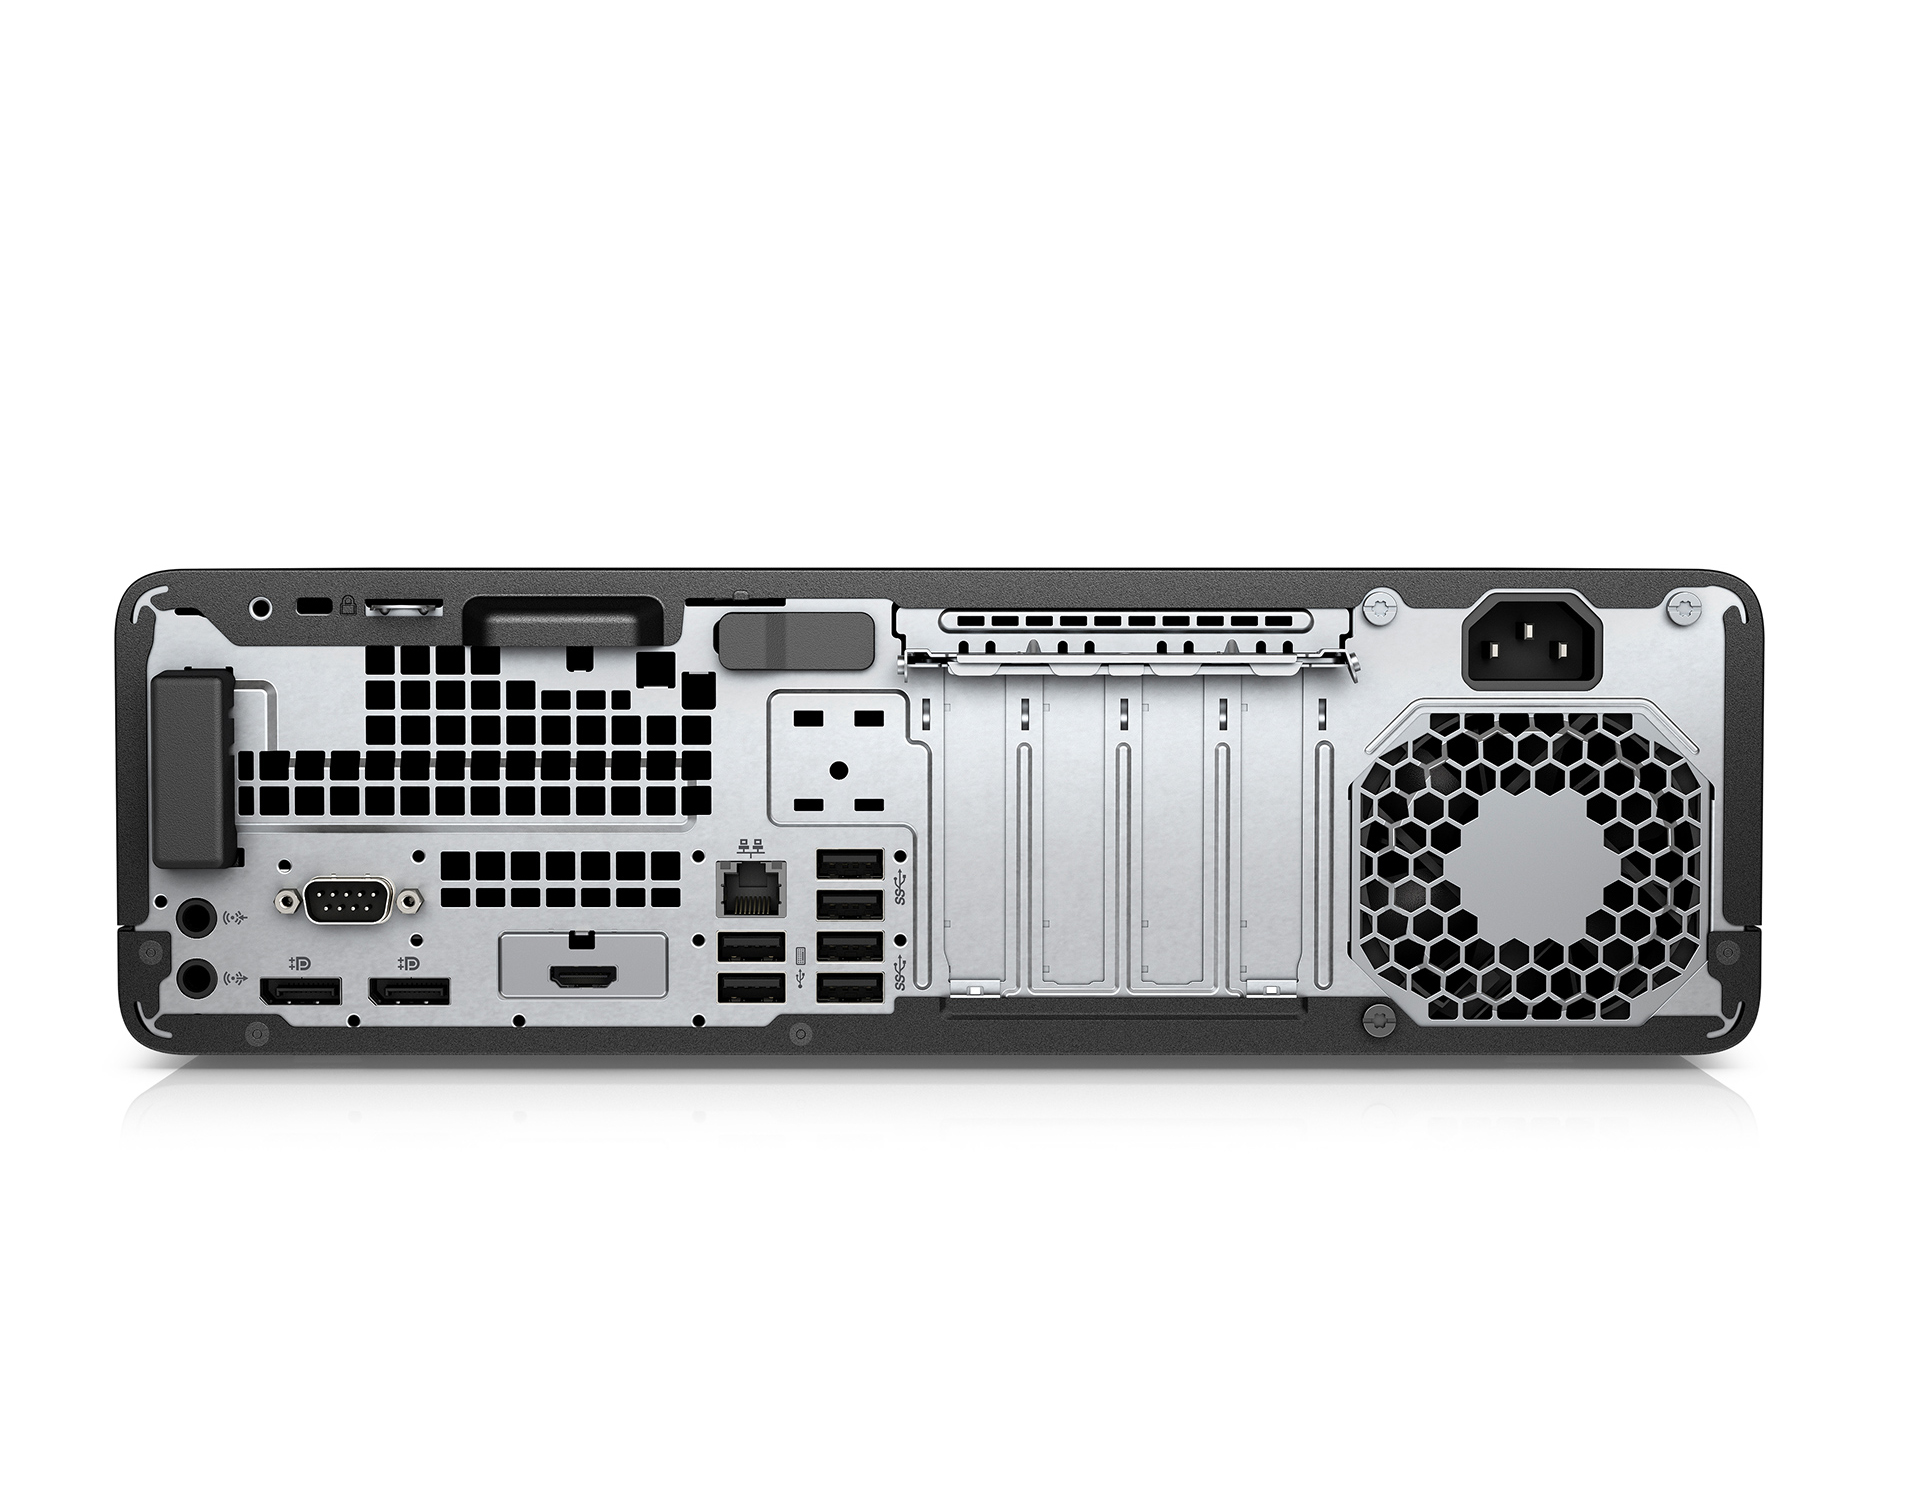 HP EliteDesk 800 G5 SF